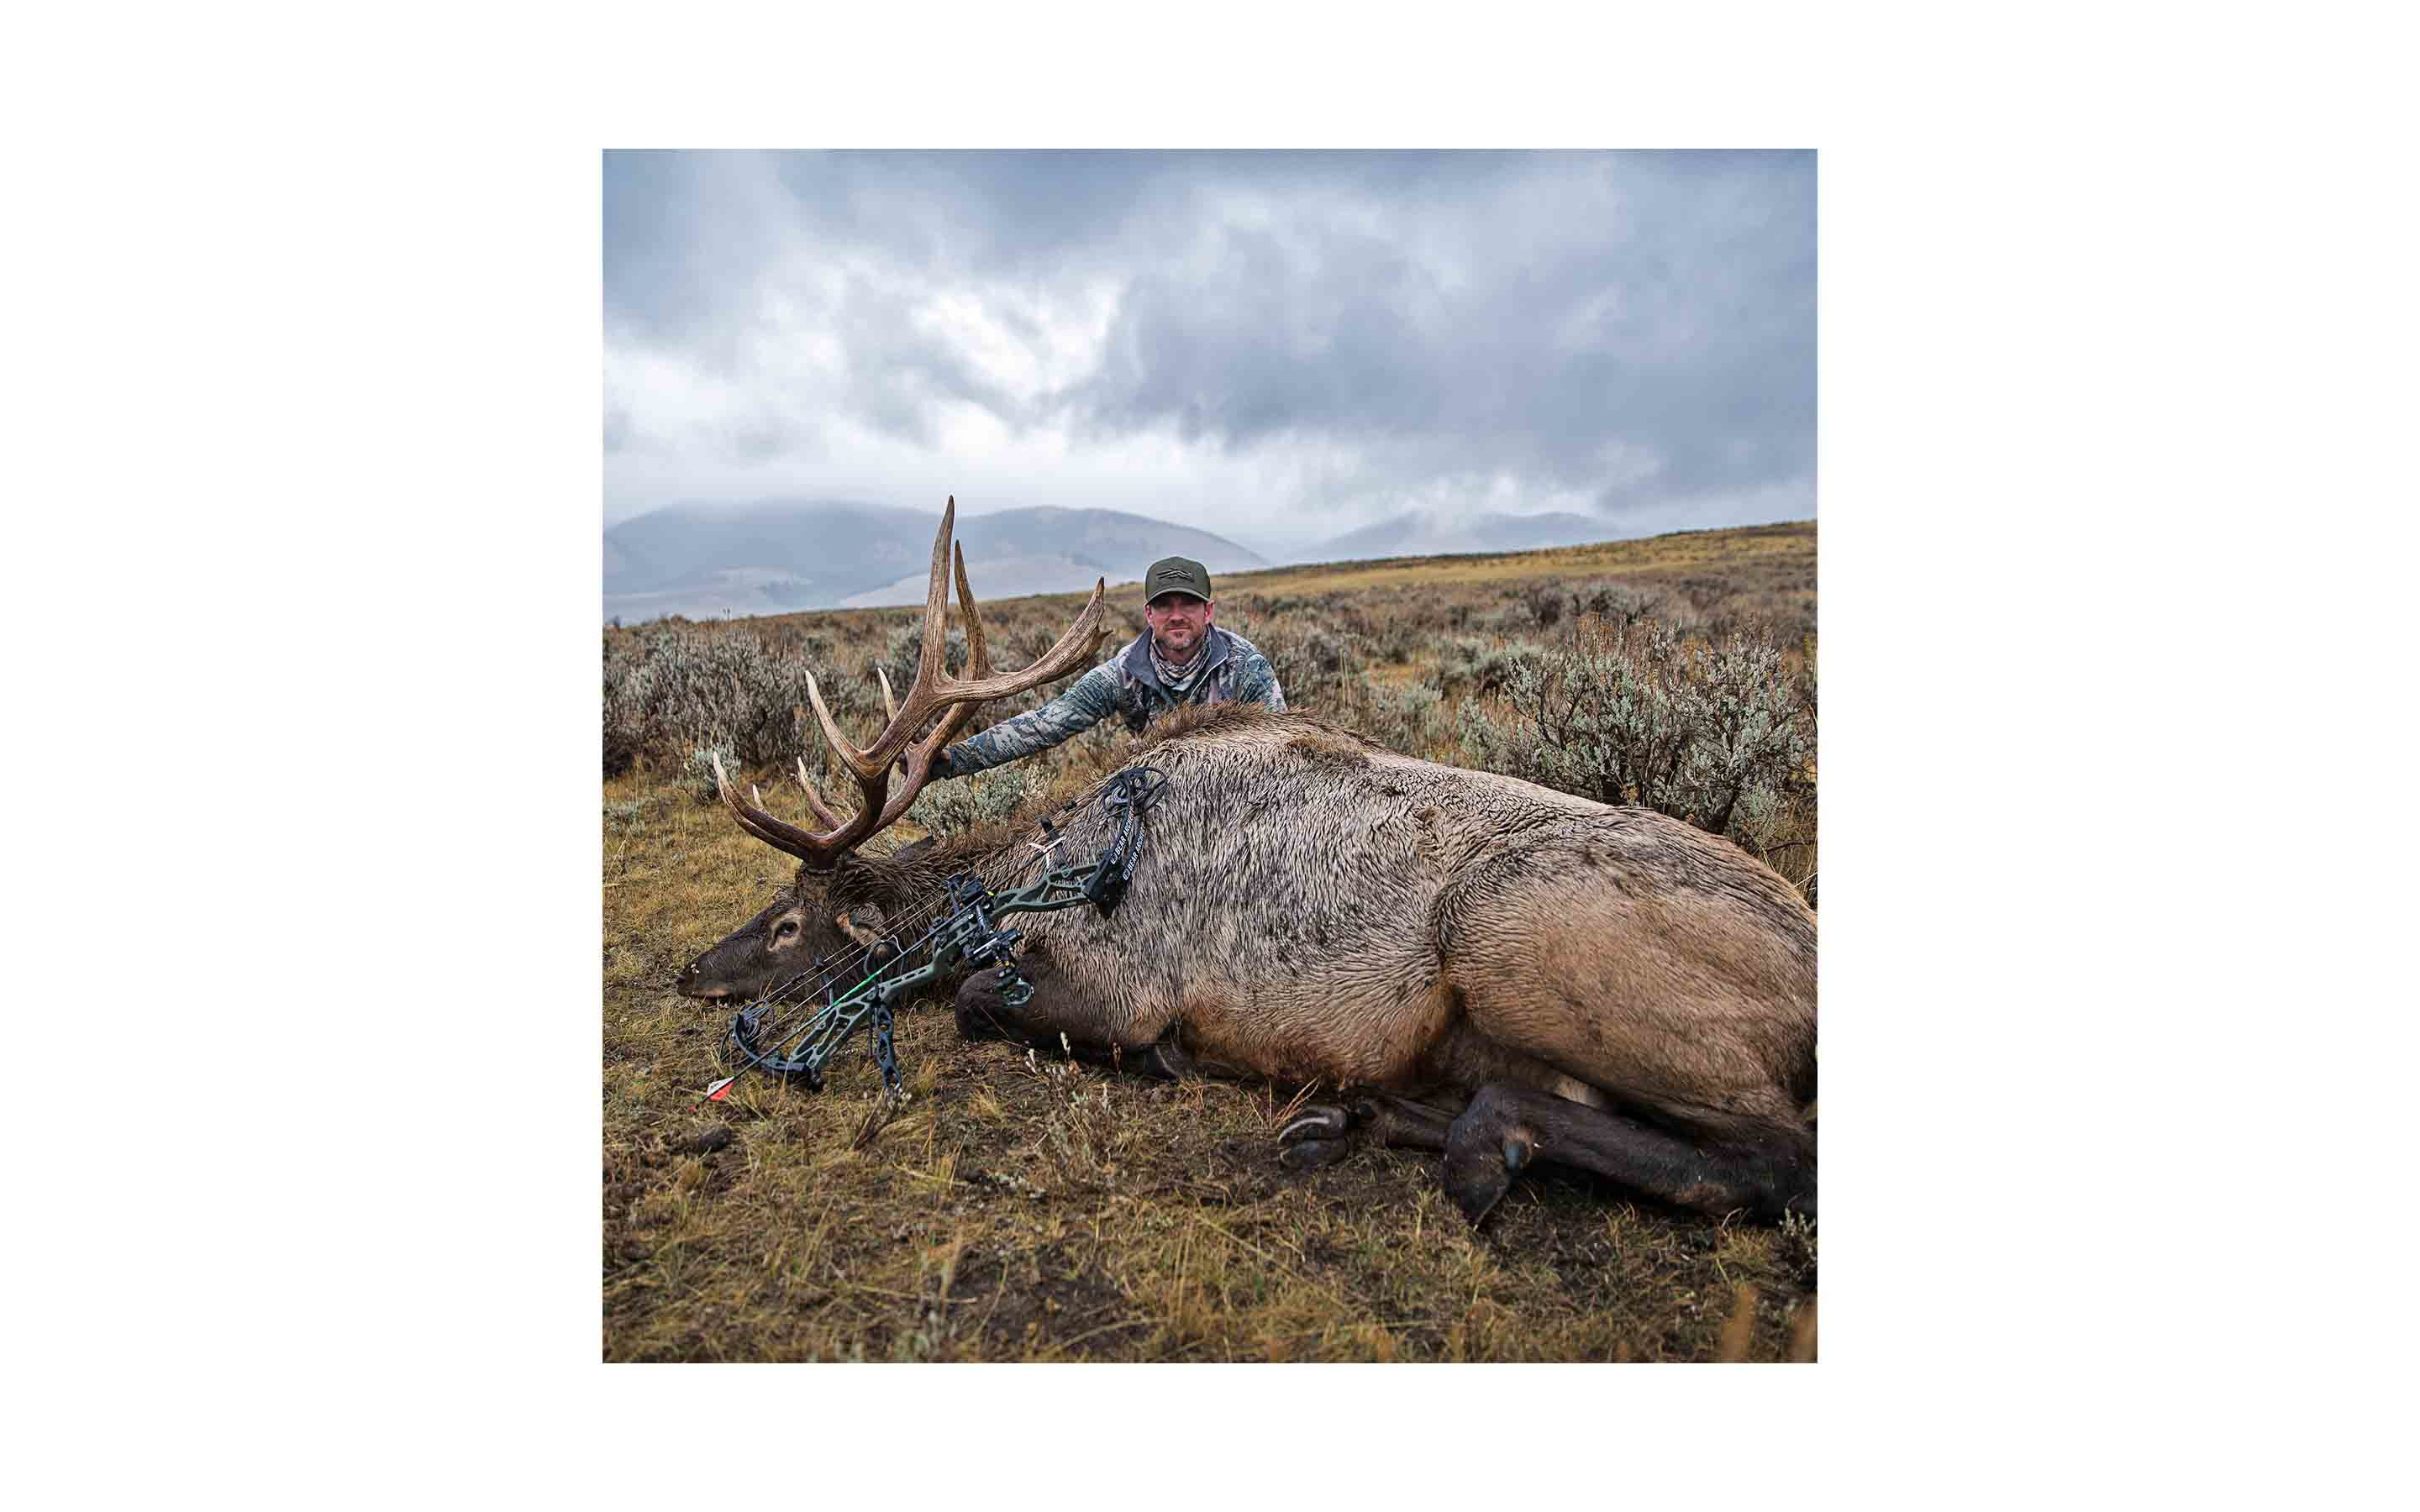 Best in the West: Coveted Hunting Tags for Western States | onX